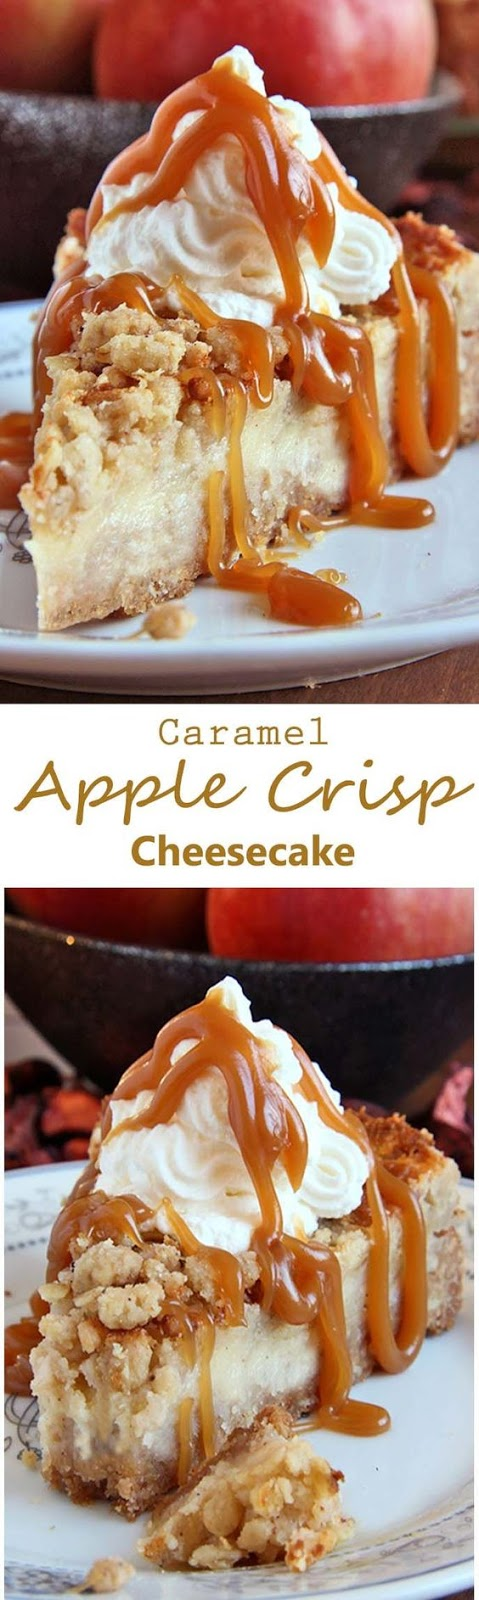 ★★★★☆ 7561 ratings   Caramel Apple Crisp Cheesecake #HEALTHYFOOD #EASYRECIPES #DINNER #LAUCH #DELICIOUS #EASY #HOLIDAYS #RECIPE #Caramel #Apple #Crisp #Cheesecake